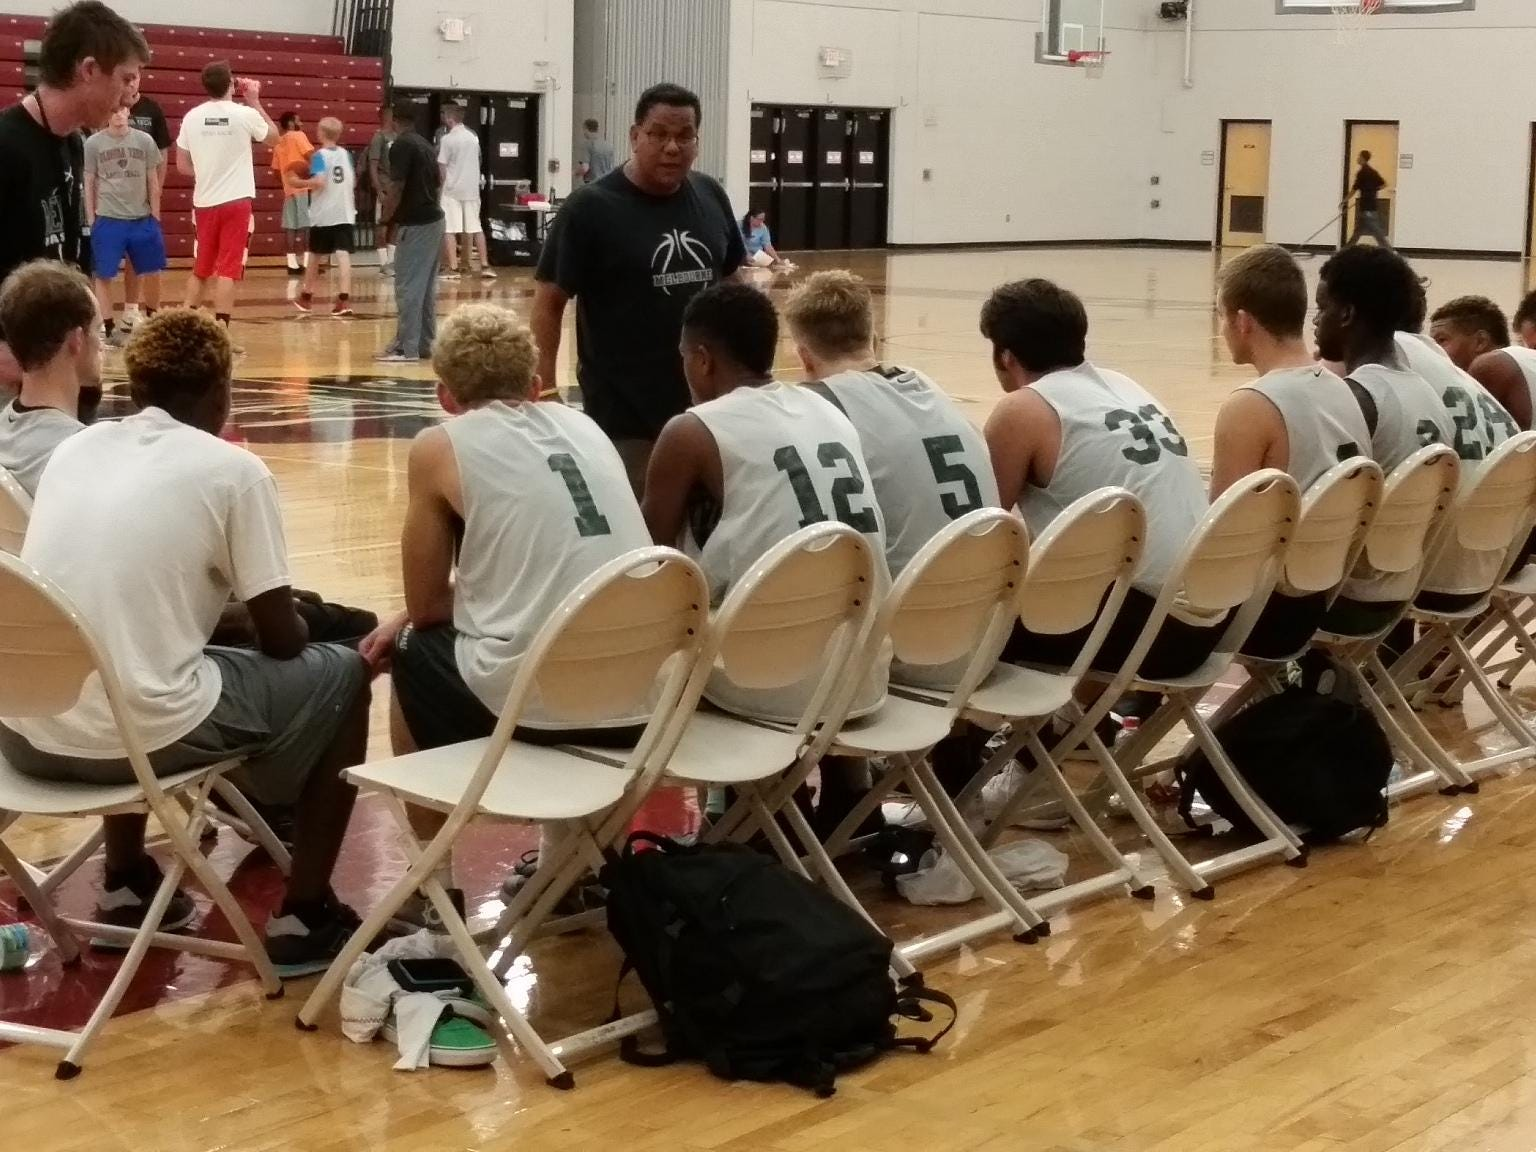 Melbourne boys basketball coach Michael Soliven talks to his team after winning the FIT boys basketball team camp title.